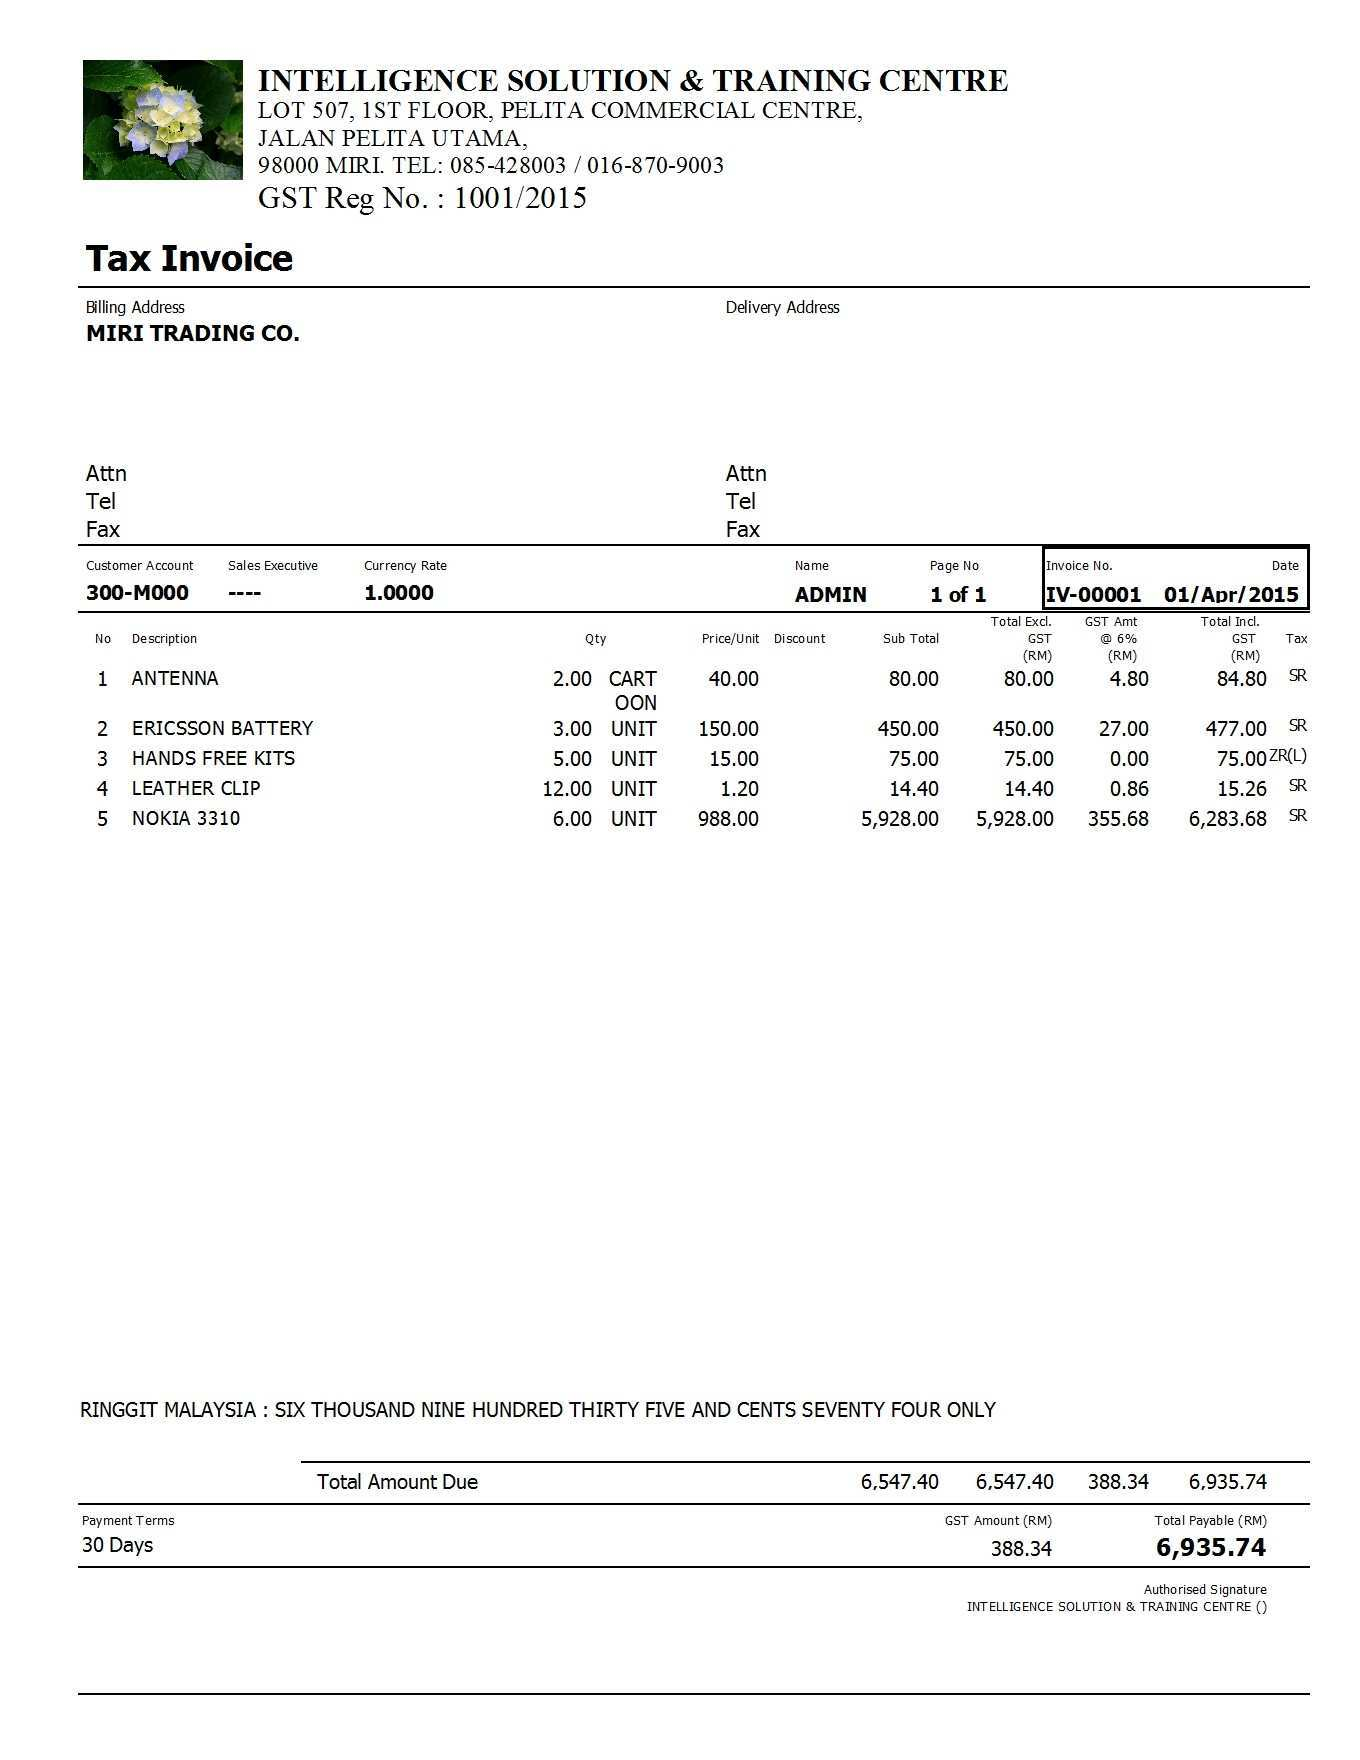 19 Customize Our Free Zero Rated Tax Invoice Template In Word For Zero Rated Tax Invoice Template Cards Design Templates